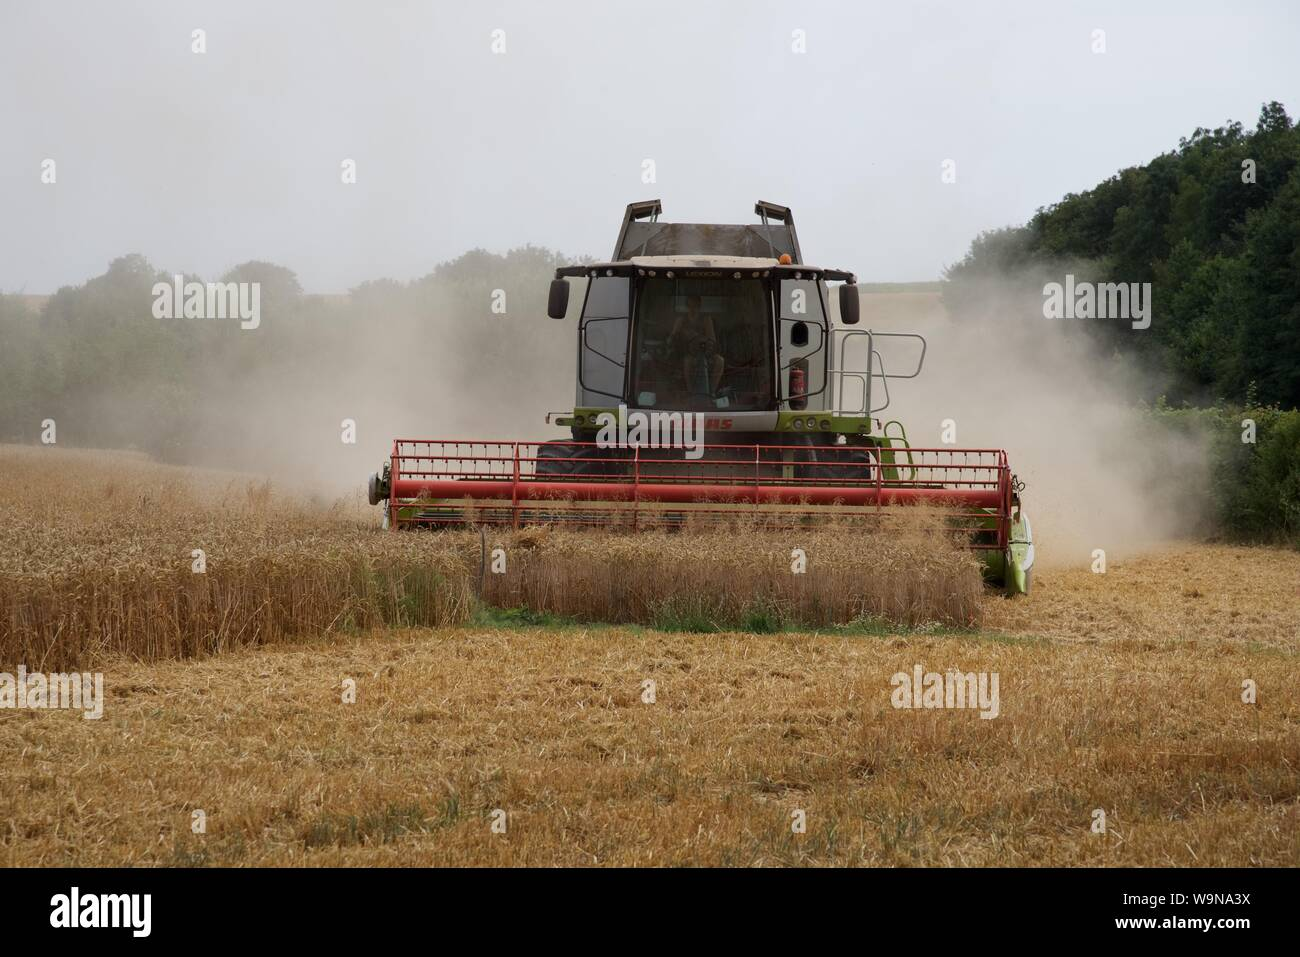 Hauts-de-France/France-July 24 2018: Wheat harvesting - the summer of 2018 and the crops of Hauts-de-France are 15 days earlier than normal Stock Photo